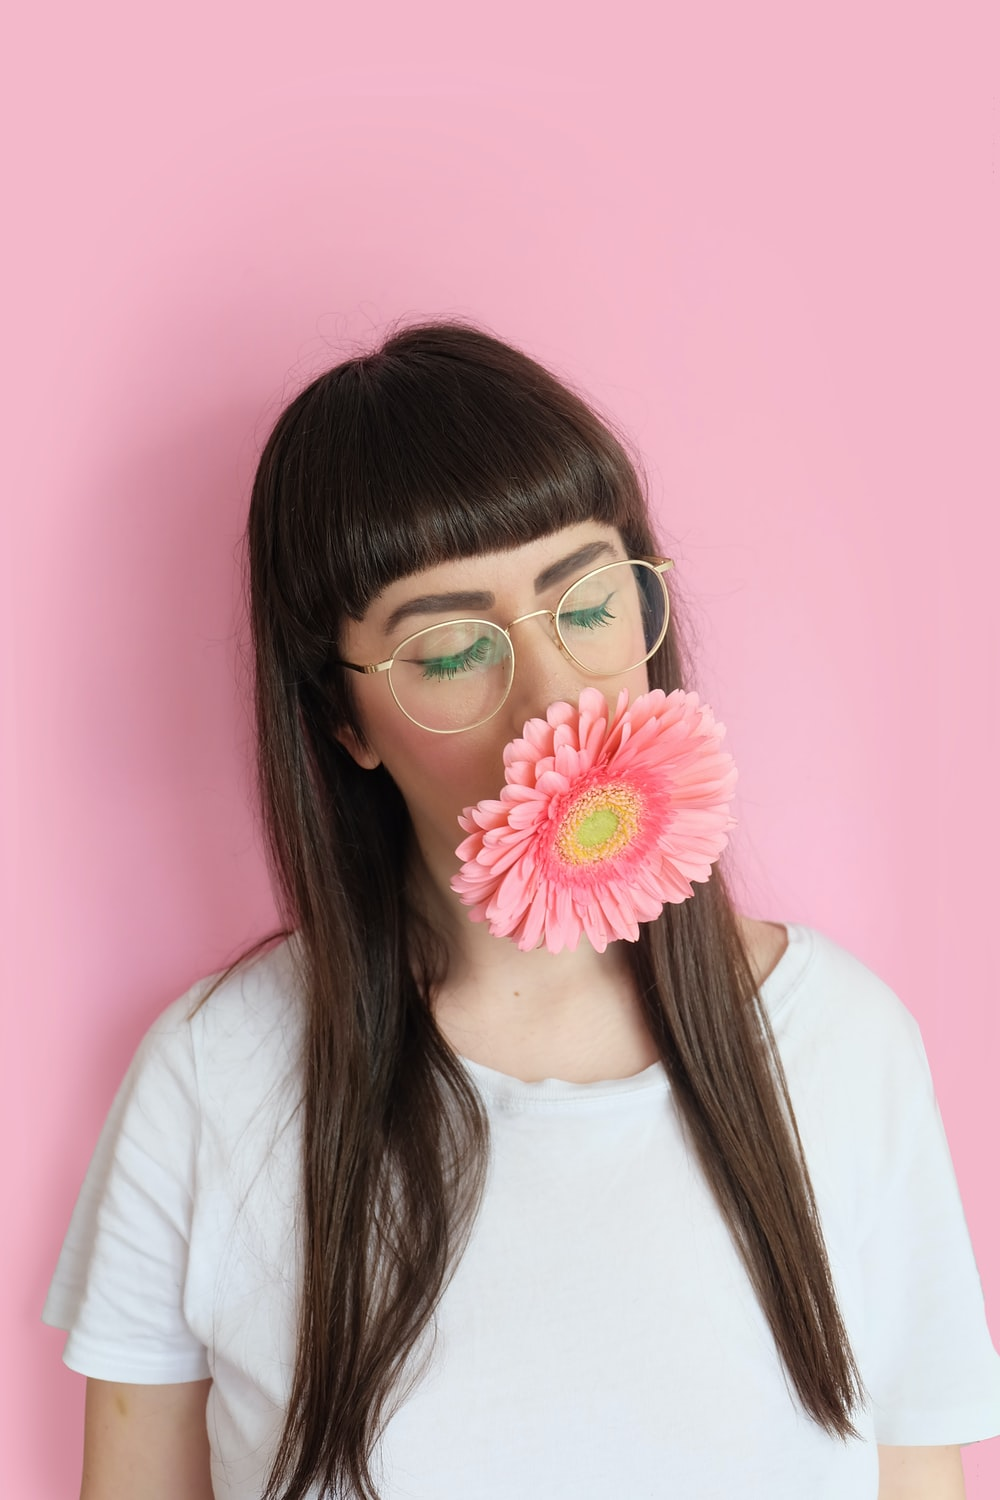 woman wearing eyeglasses with flower in mouth